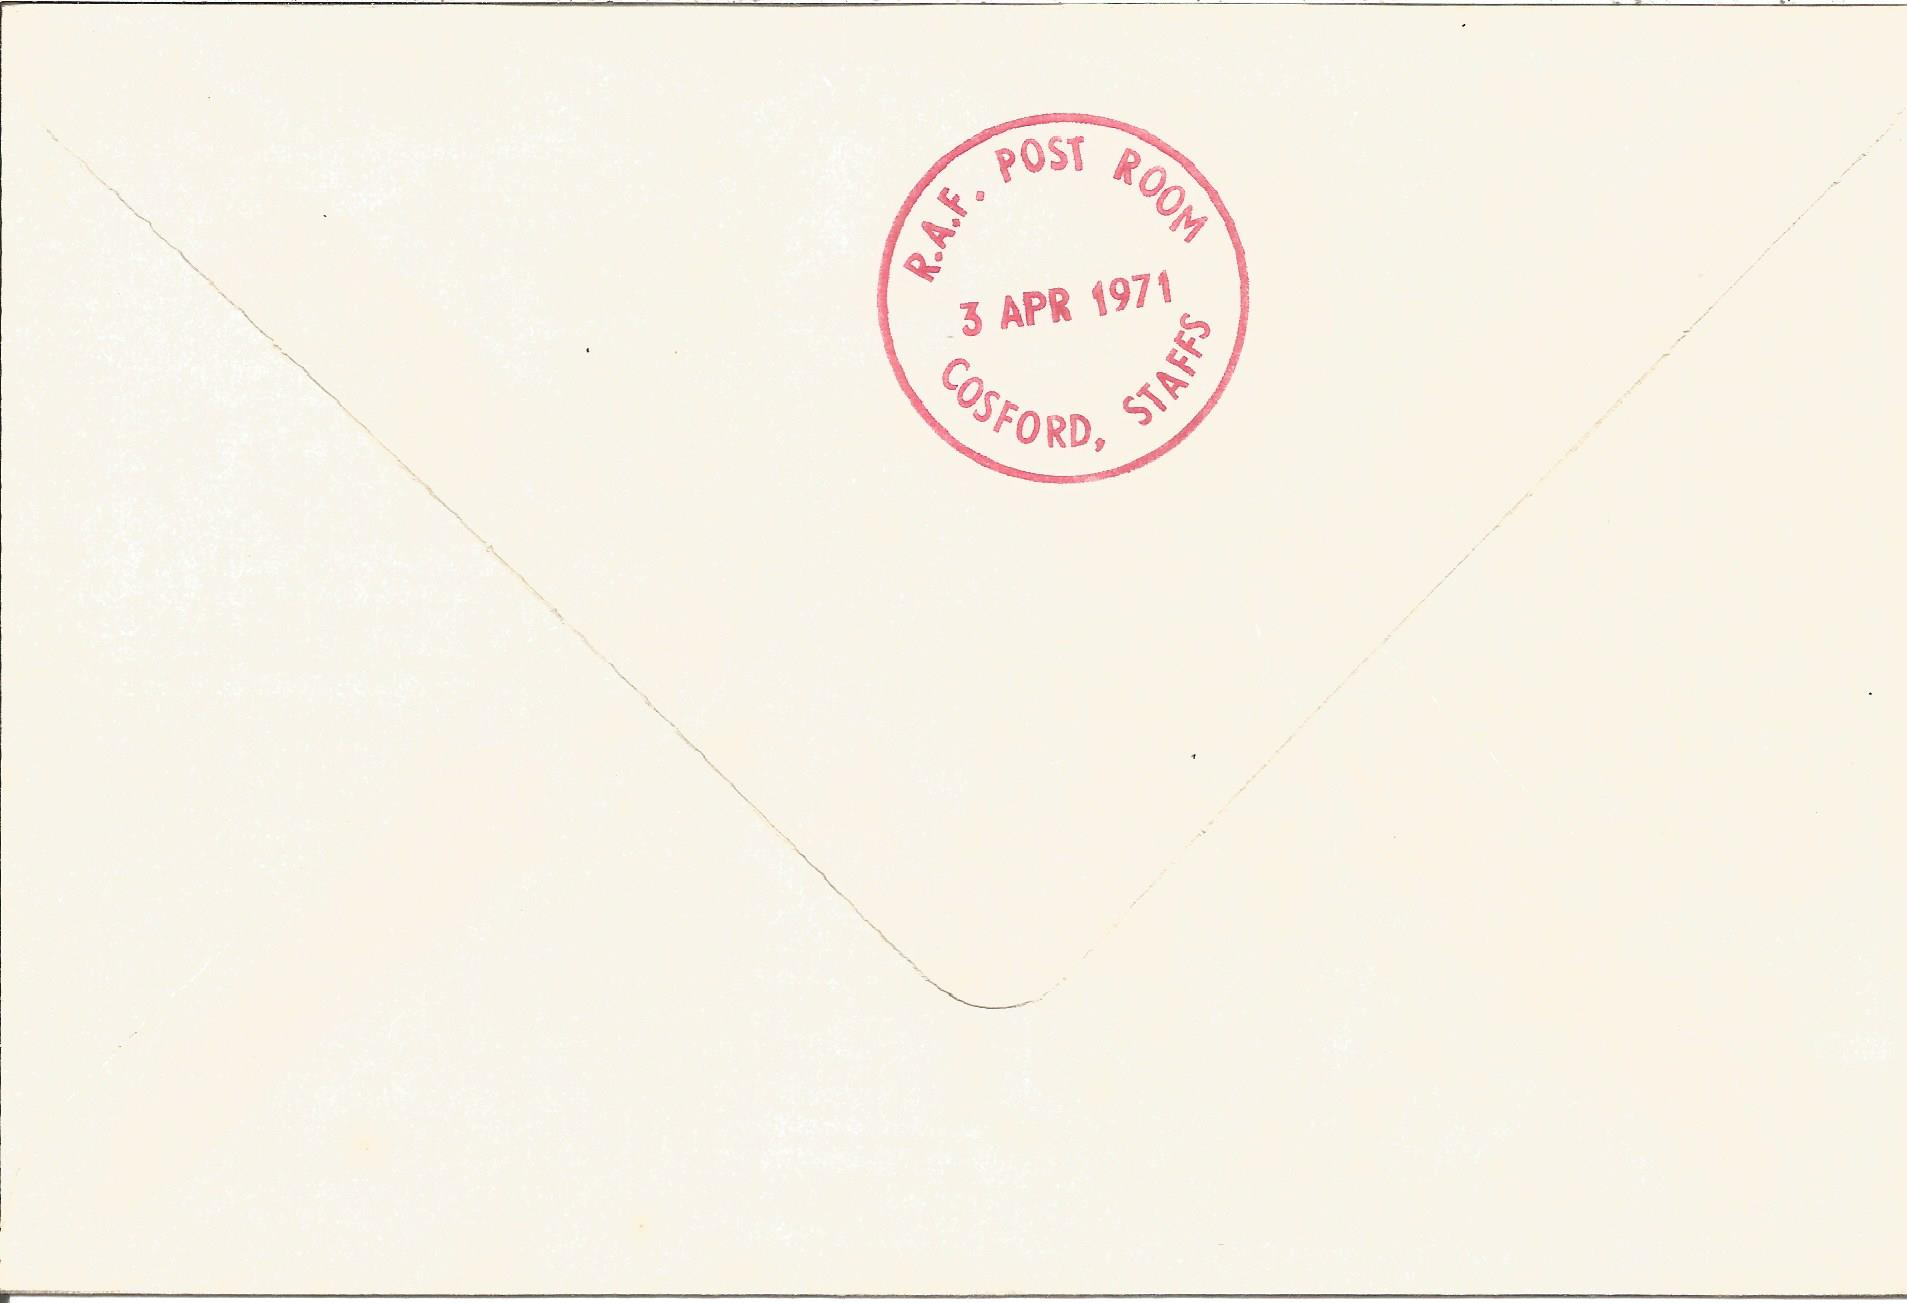 RAF Cosford First RAF Rocket mail 3rd April 1971 Unflown FDC SC19/10. Printers Colour Trials with - Image 2 of 2